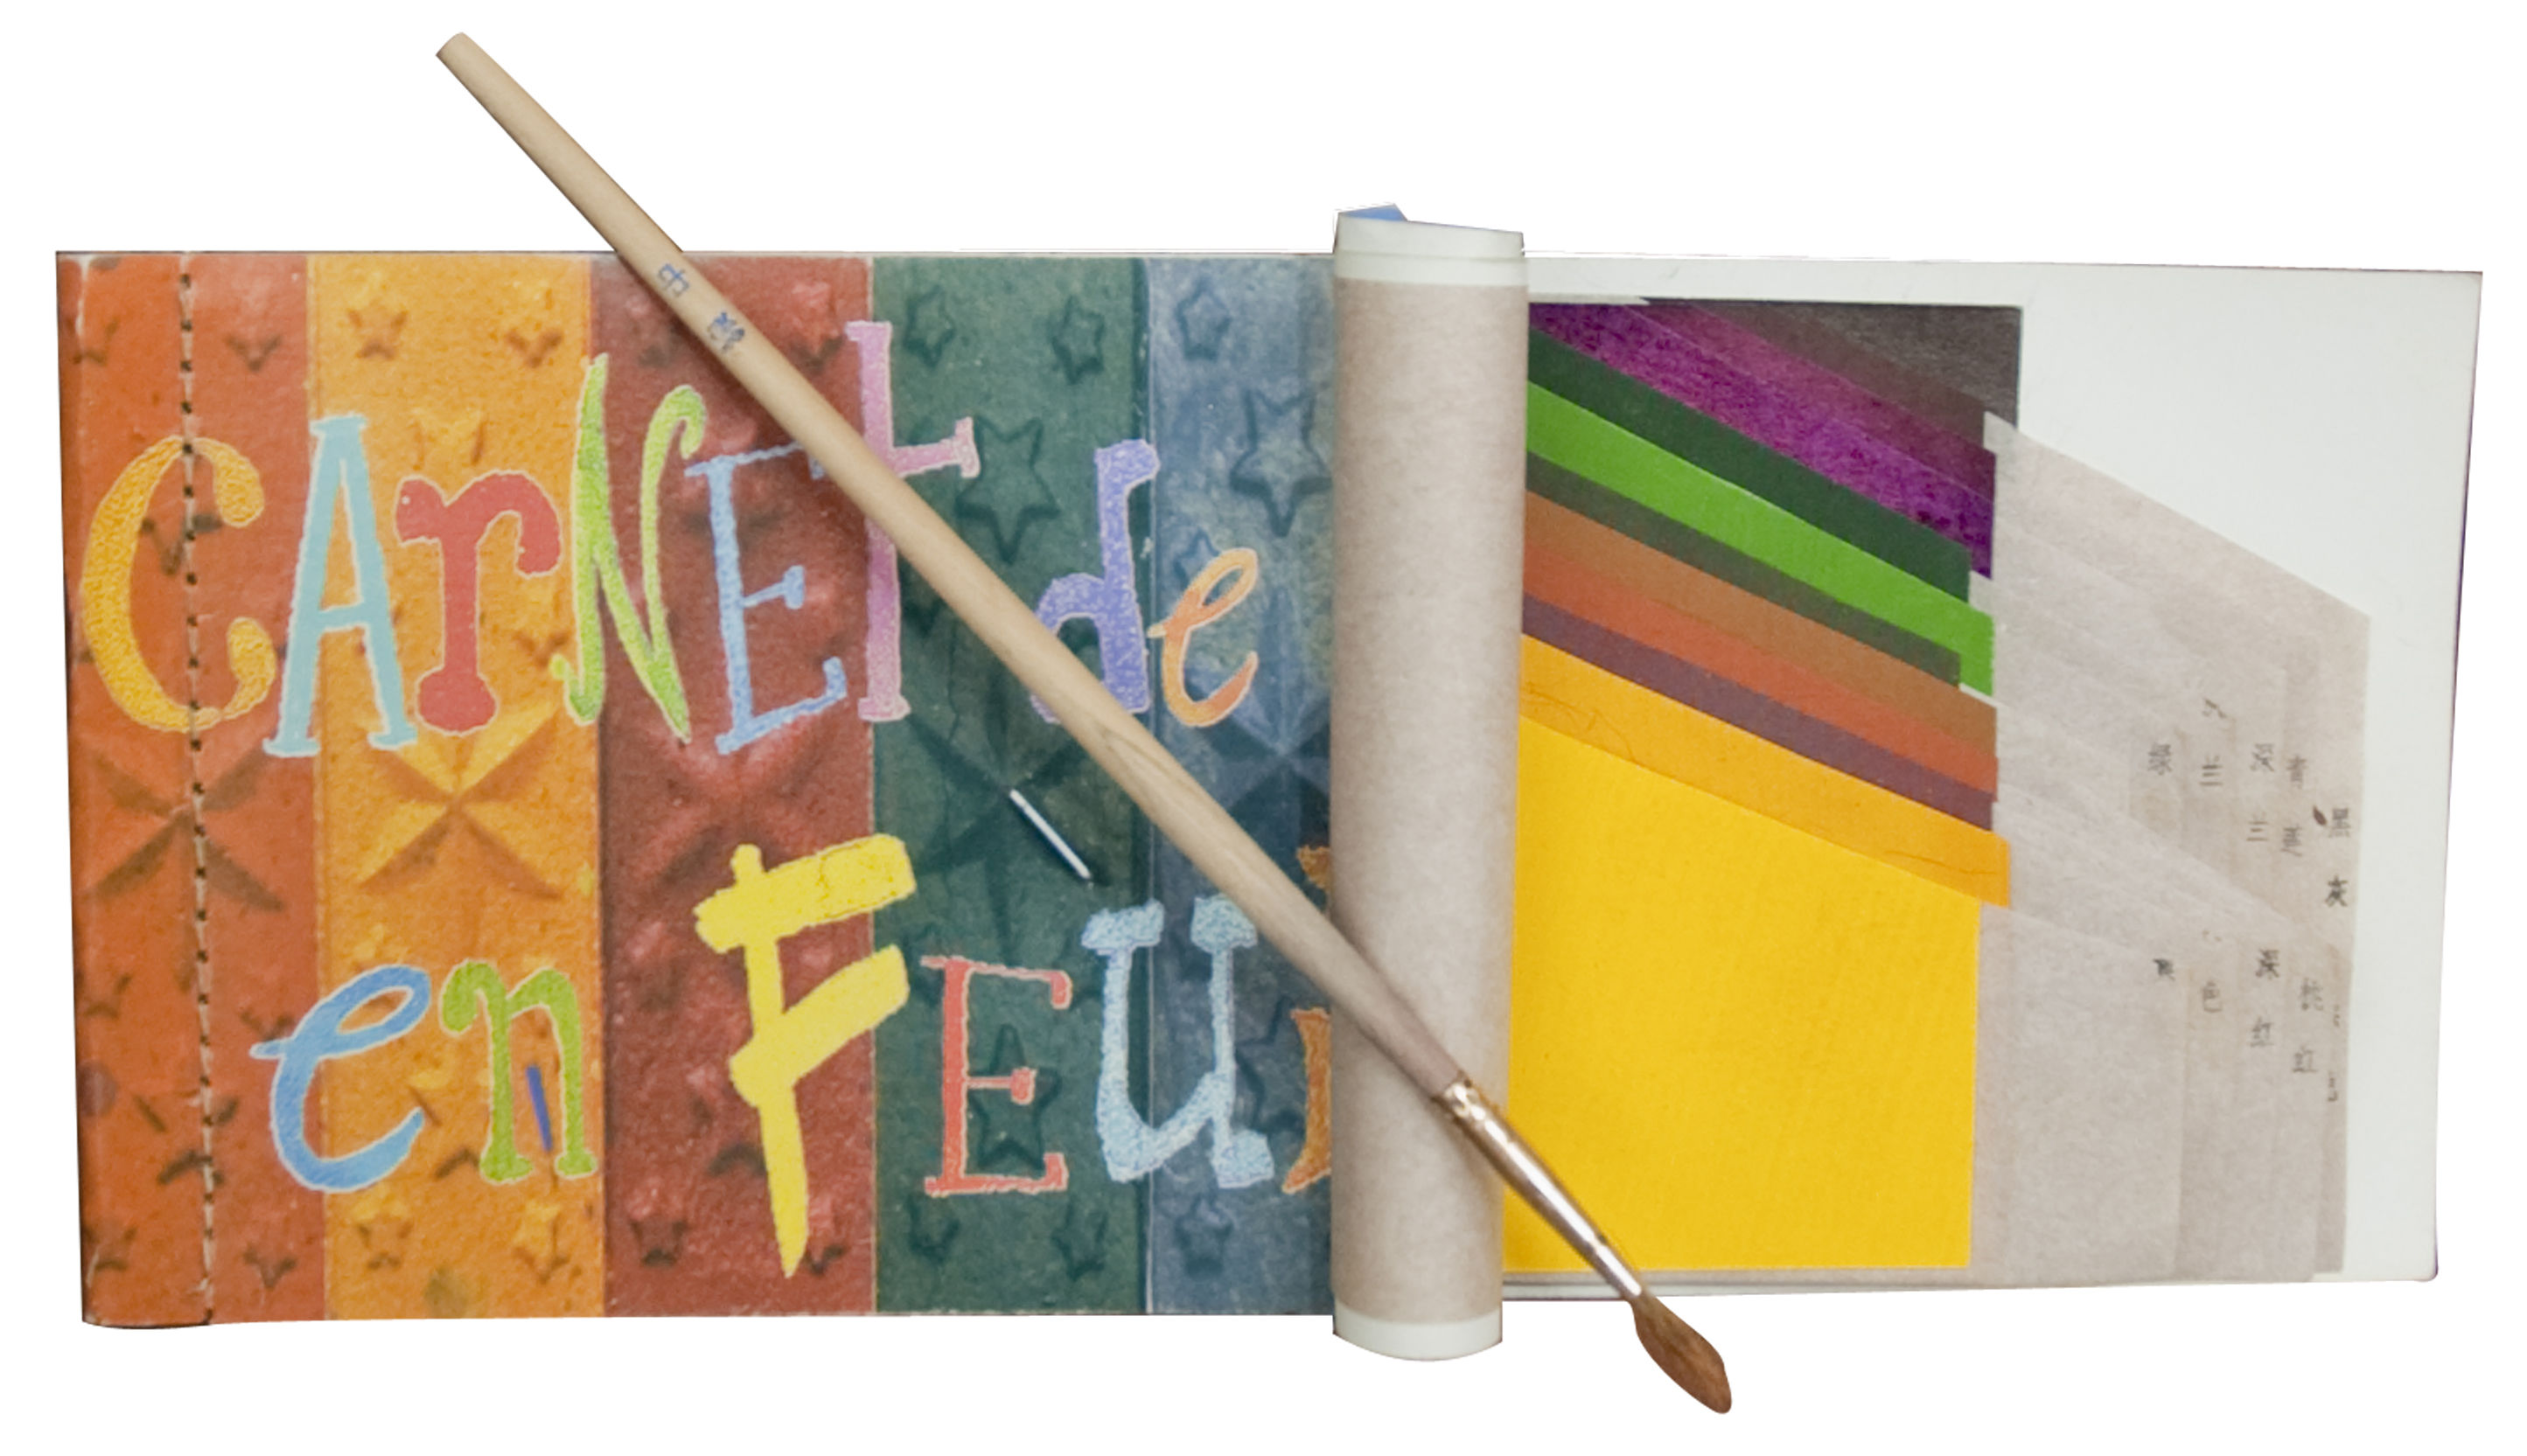 Decoration - Office - Carnet de couleur Notepad - Notebook + watercolour palette + paintbrush by Tsé-Tsé - Multicolored - Paper